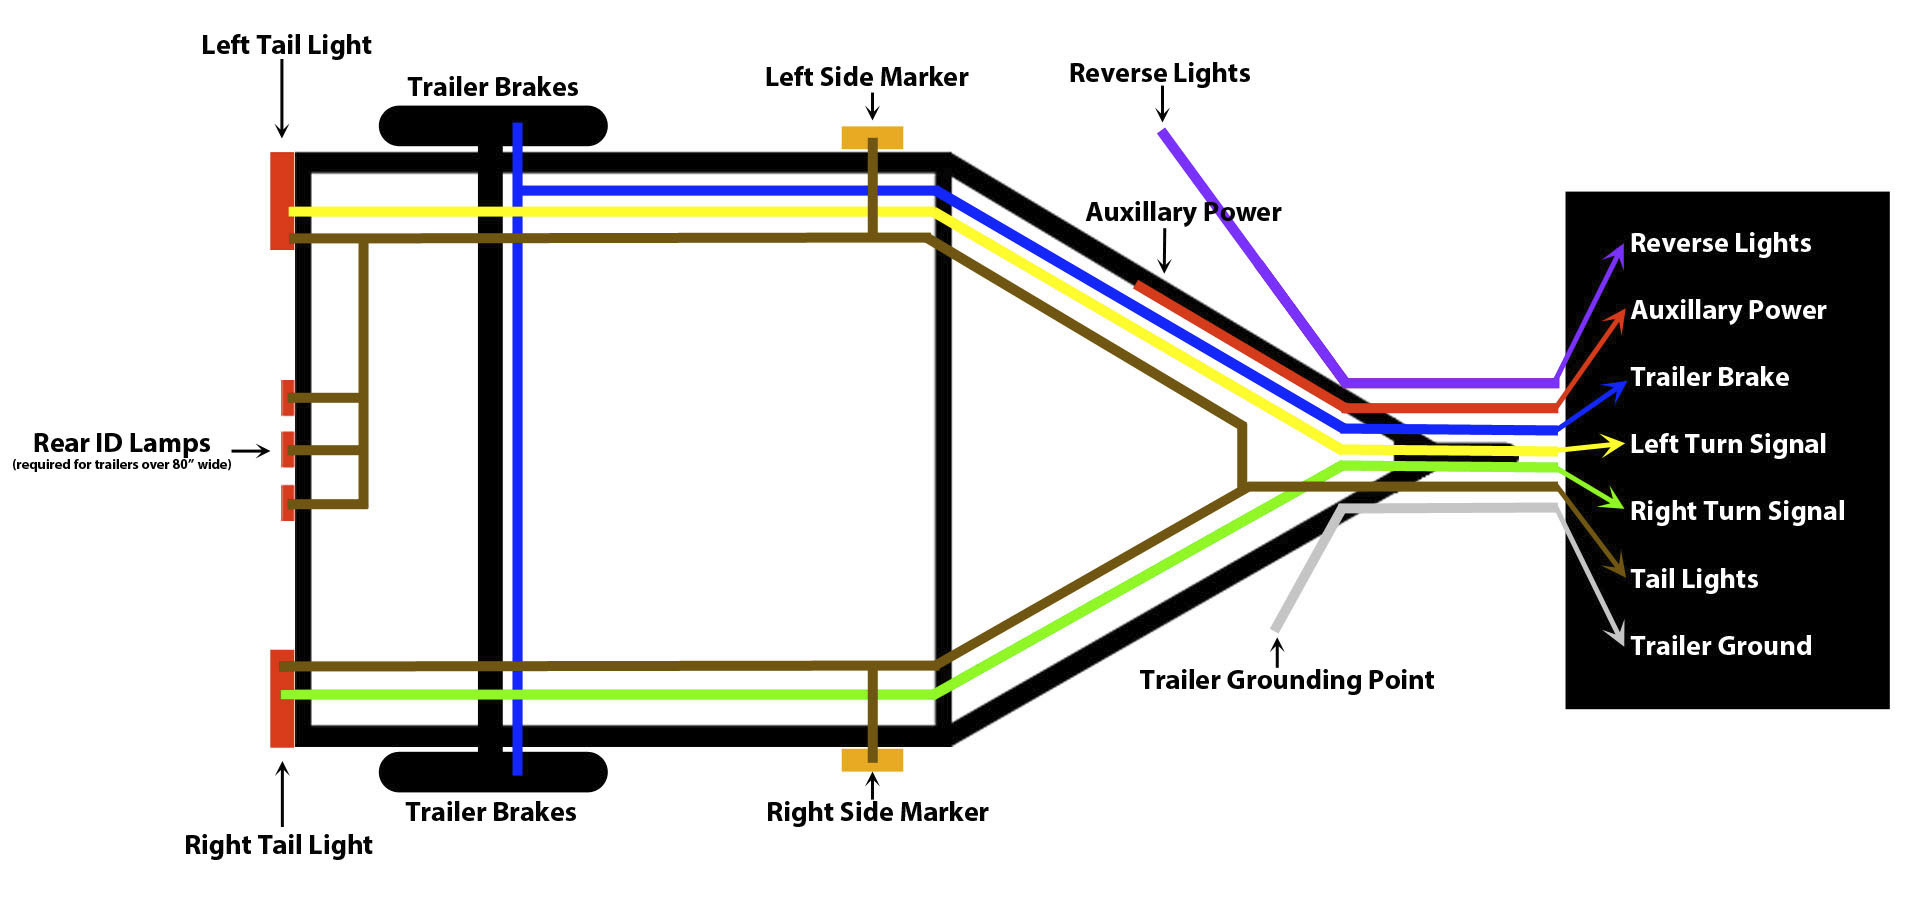 How To Wire Trailer Lights - Trailer Wiring Guide & Videos - Wiring Diagram For A Trailer Socket